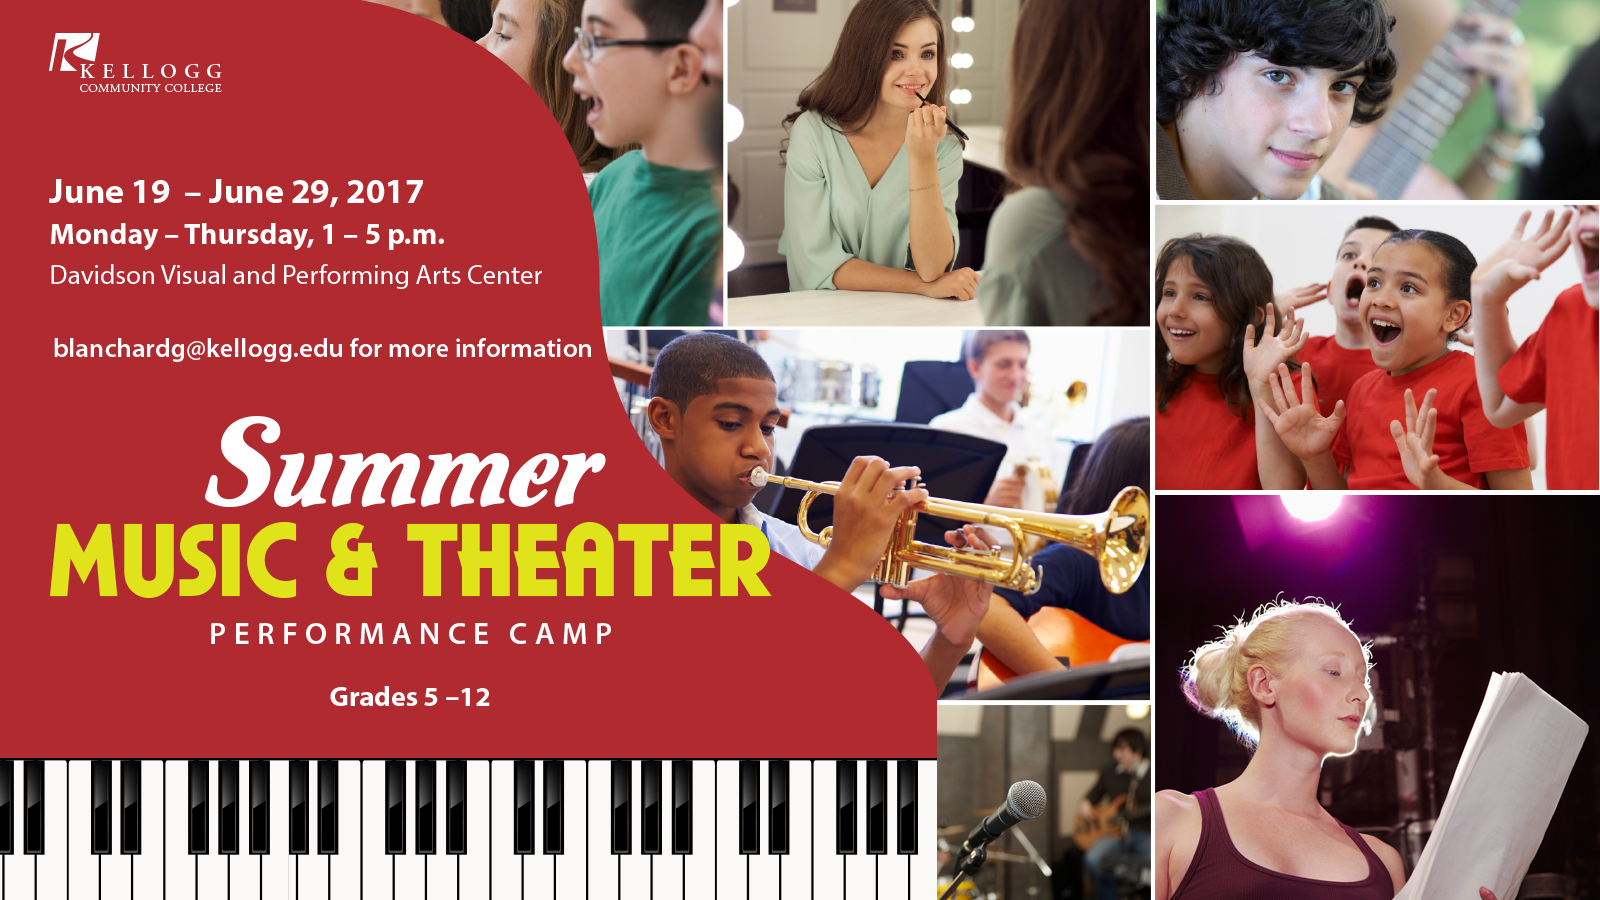 A promotional slide highlighting KCC's Summer Music & Theater Performance Camp for youth in June in Battle Creek.